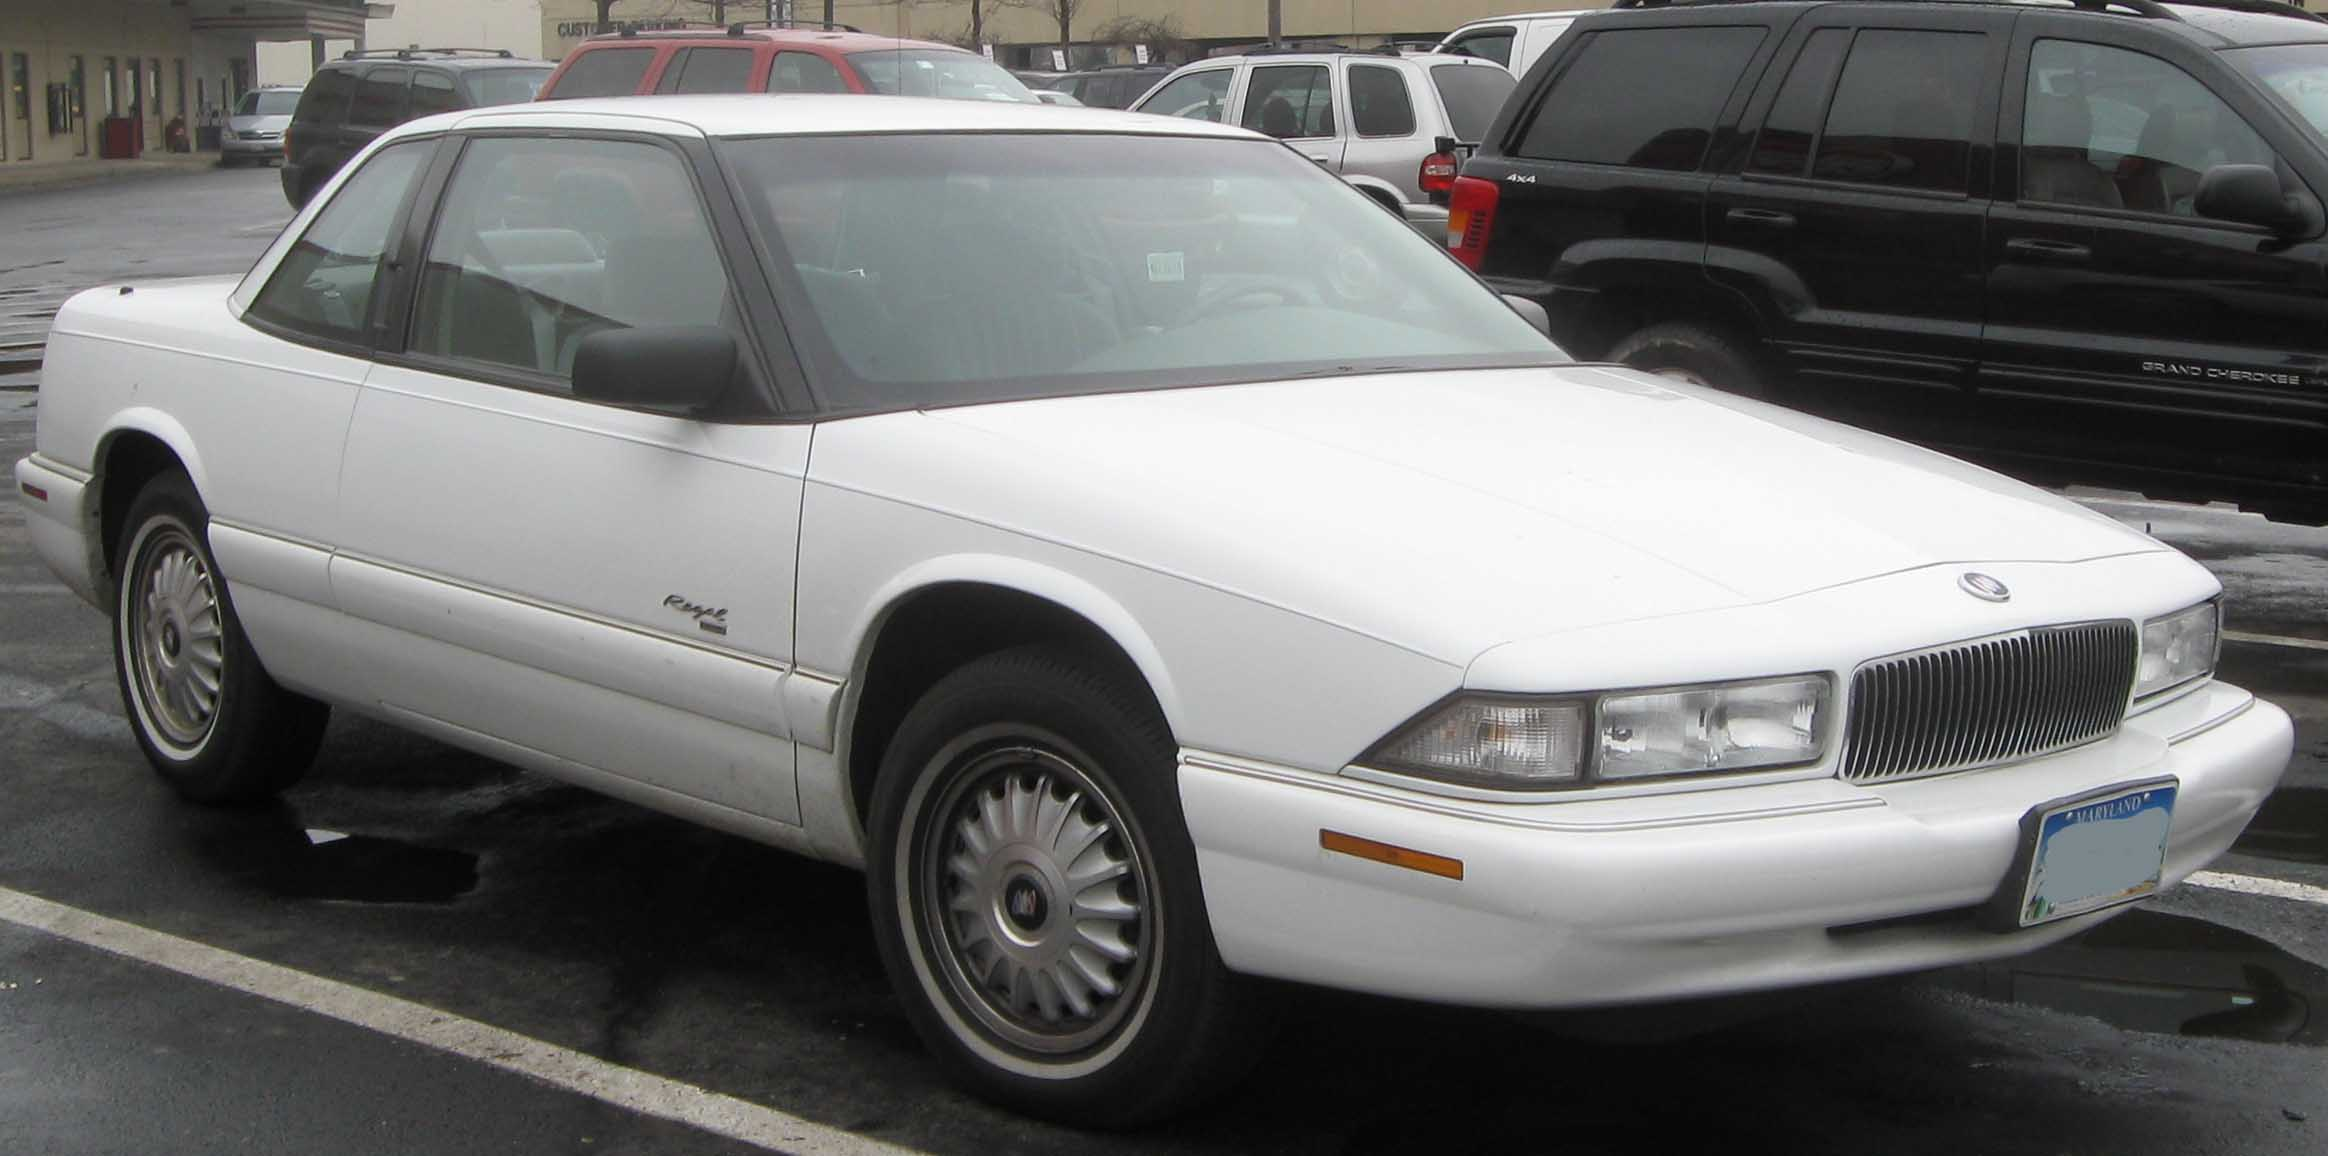 16 besides 5385 1996 Buick Lesabre 10 moreover Back Front Covers likewise 52bu as well 8067112472. on buick